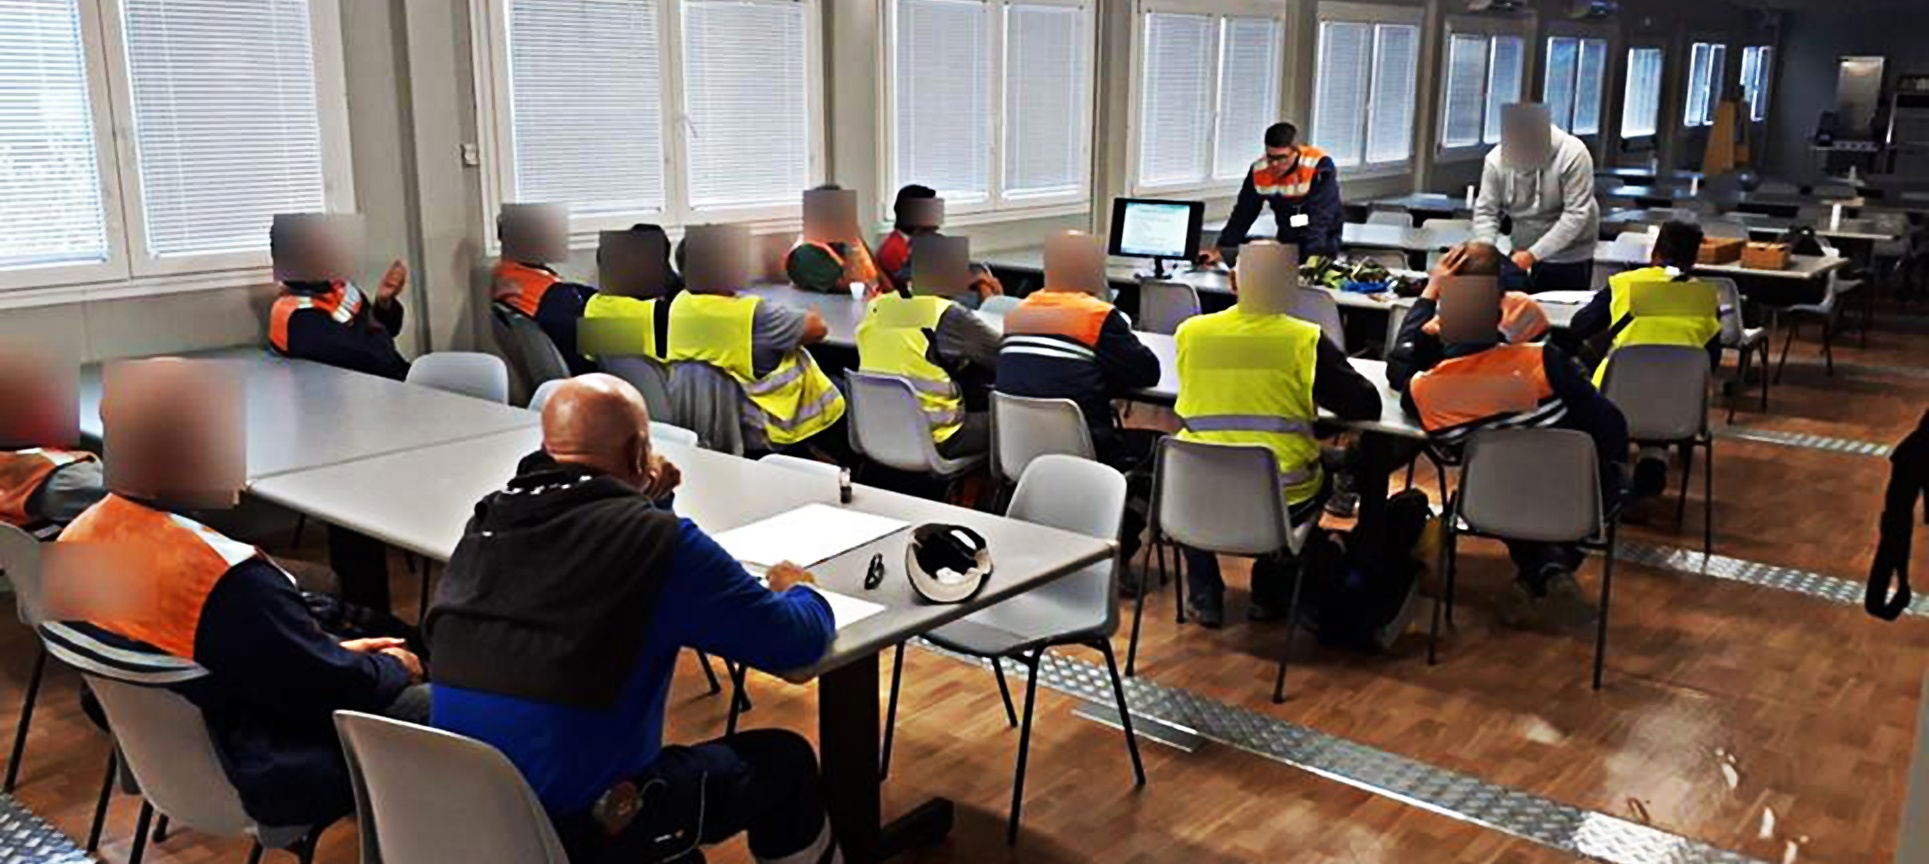 Prosafe occupational health and safety